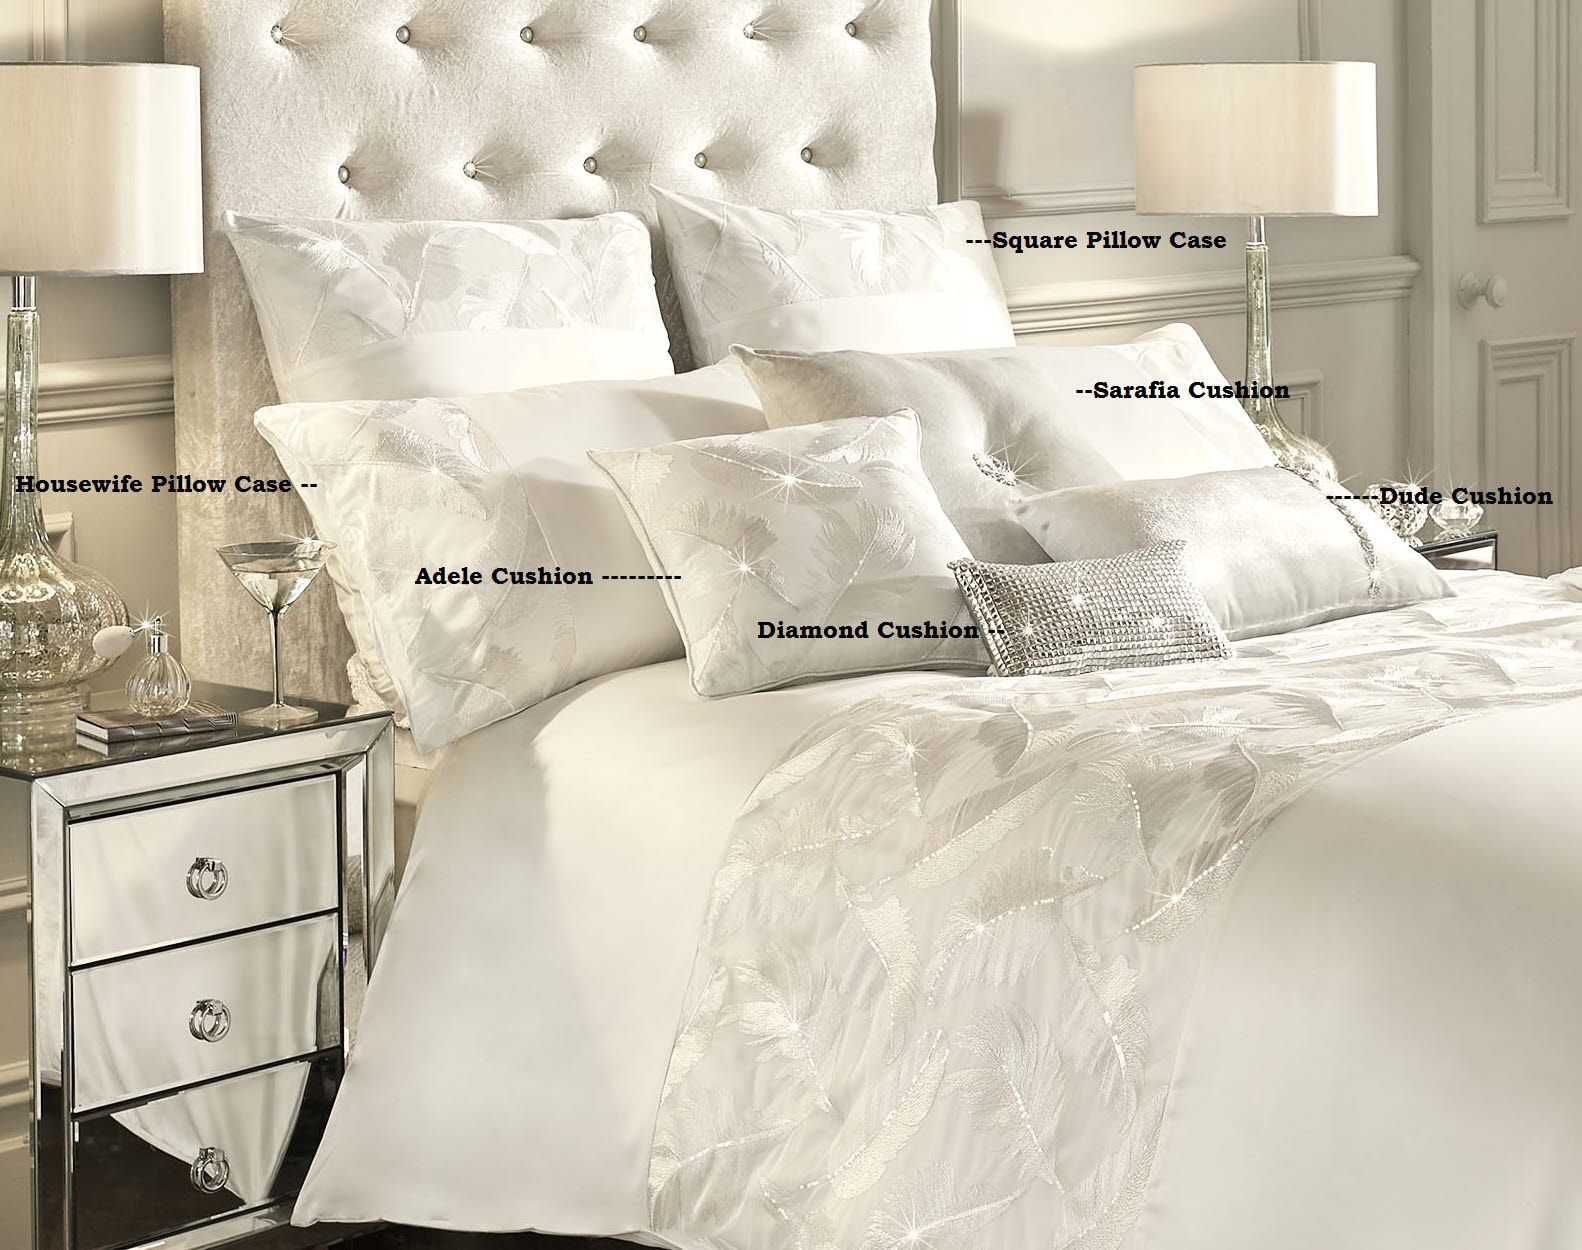 New Kylie Minogue Adele Bed Linen Design In This Beautiful Feather